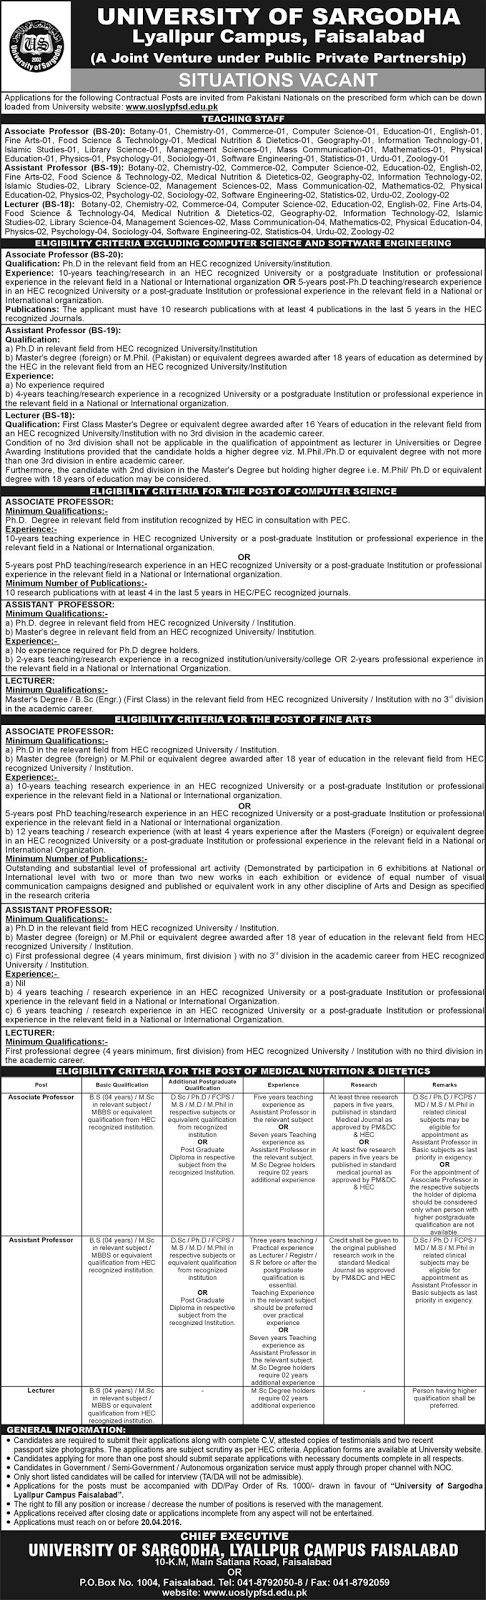 Teaching Faculty Jobs in University of Sargodha Faisalabad Campus